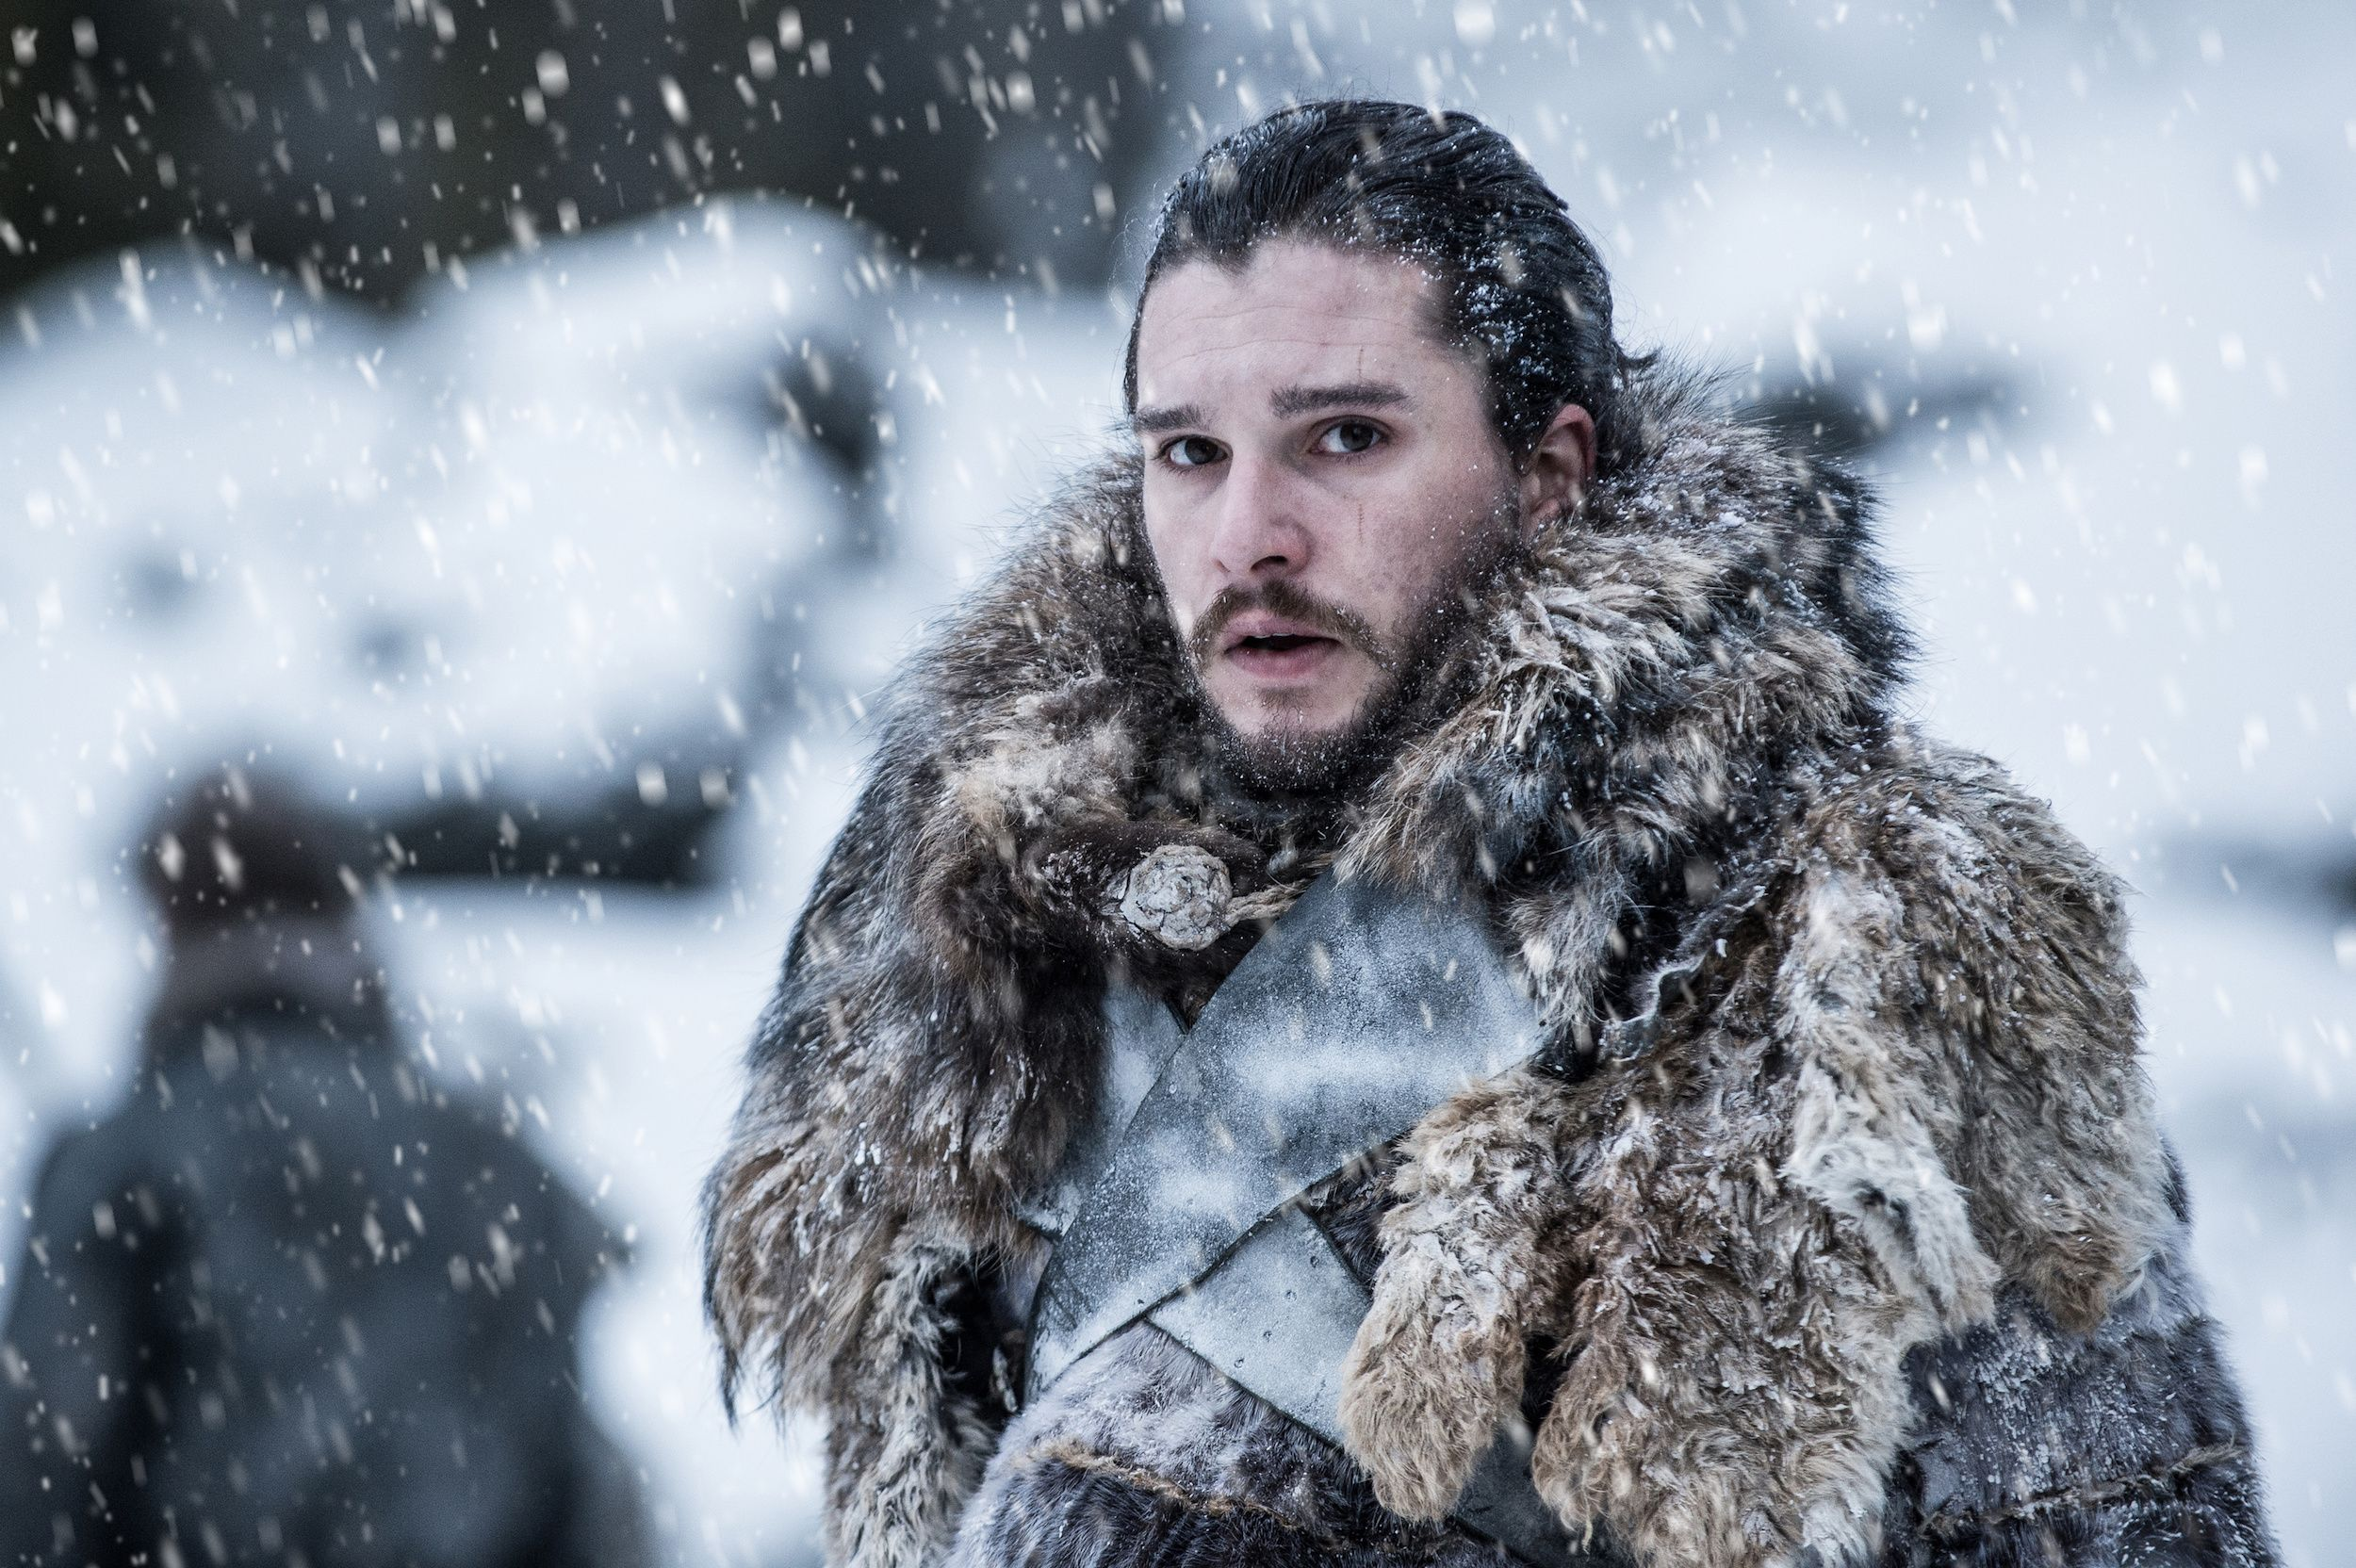 Kit Harington Just Explained the Real Meaning of the 'Game of Thrones' Finale